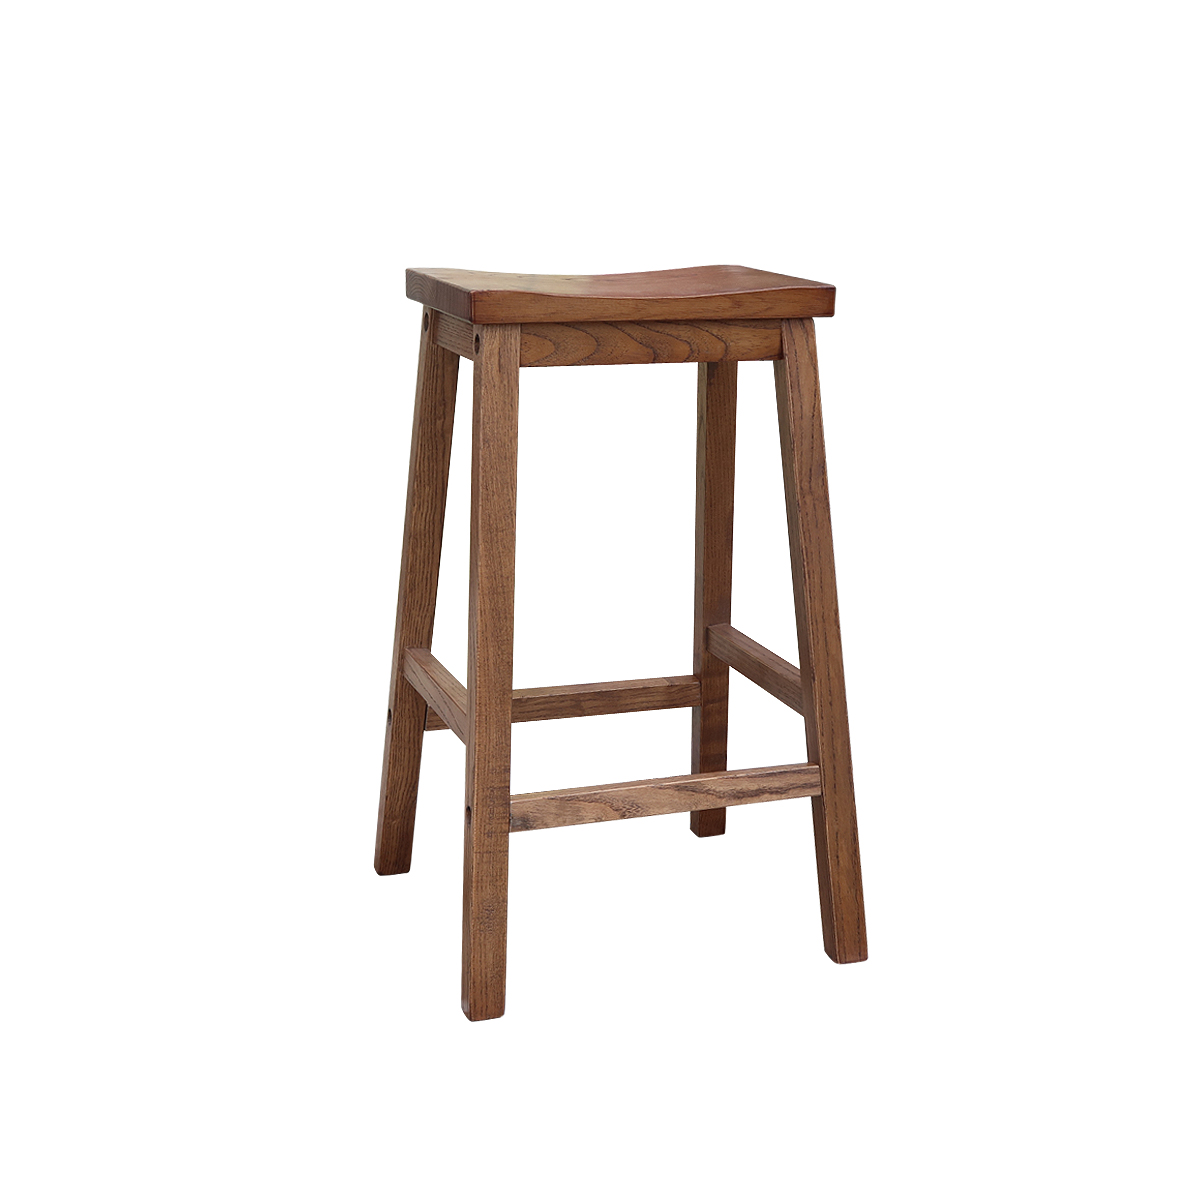 Awesome Bar Stools In Perth Timber Breakfast Kitchen Bar Stools Squirreltailoven Fun Painted Chair Ideas Images Squirreltailovenorg